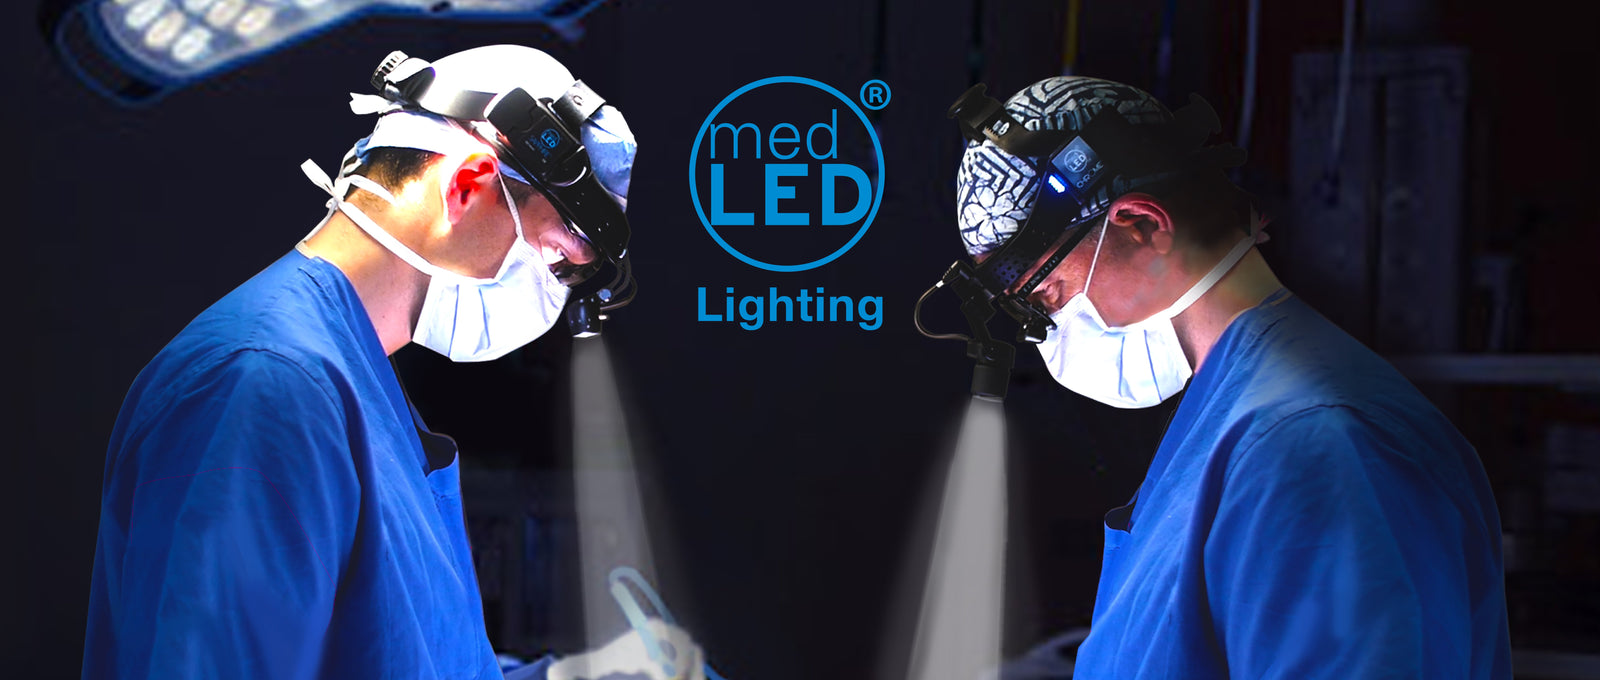 MedLED®  |  Home of the Brightest Truly Cordless™ Headlight